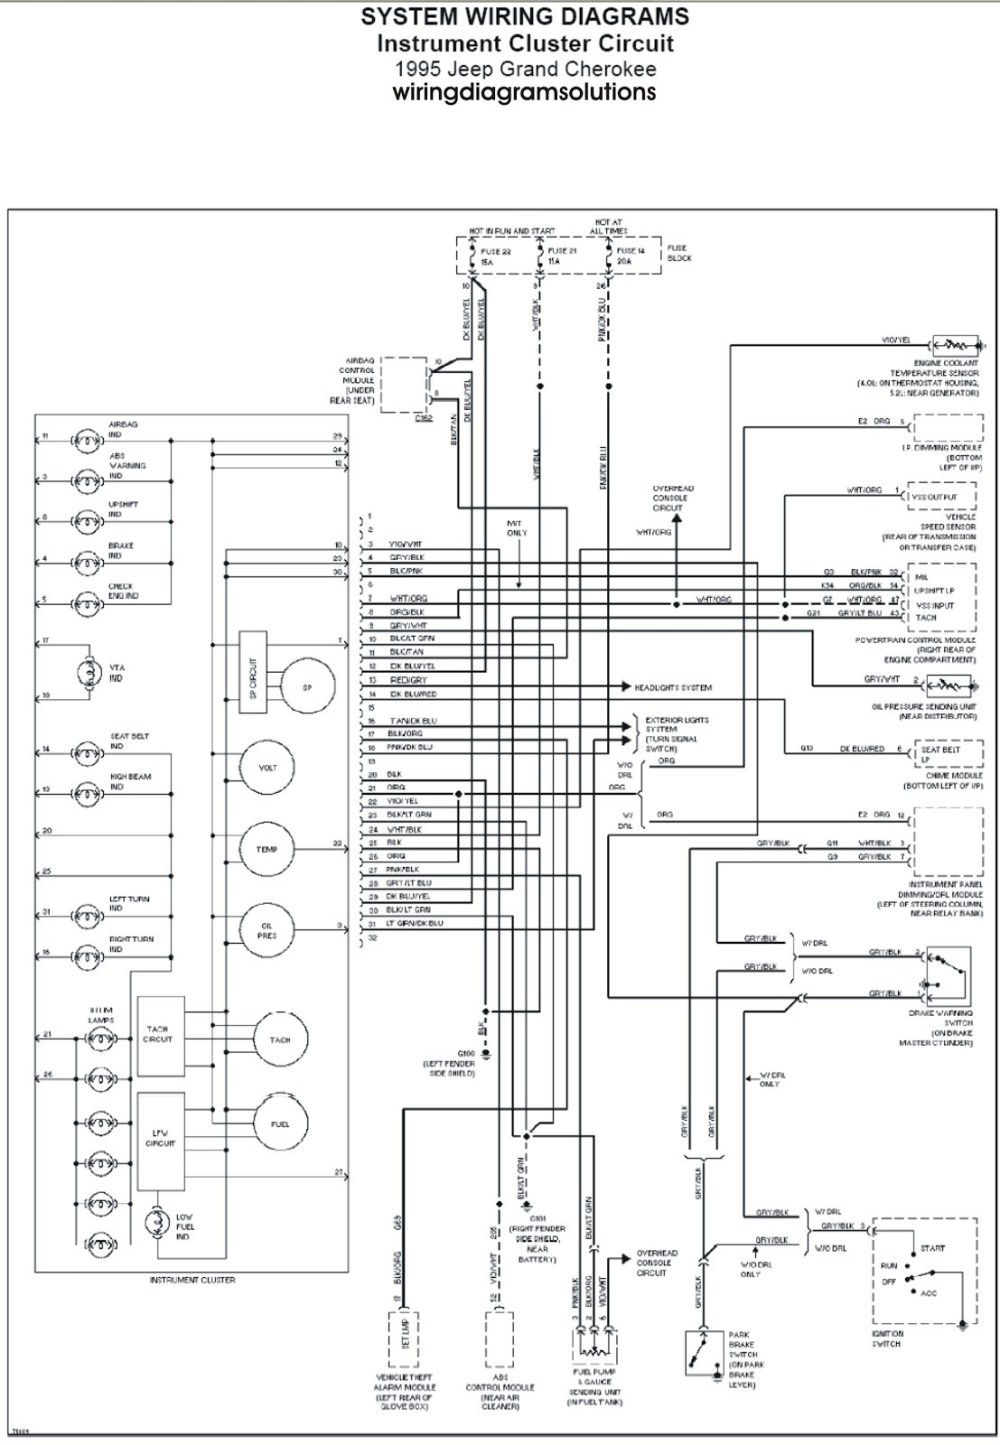 medium resolution of 1995 jeep grand cherokee stereo wiring diagram for to wiring diagram 2011 jeep grand cherokee wiring